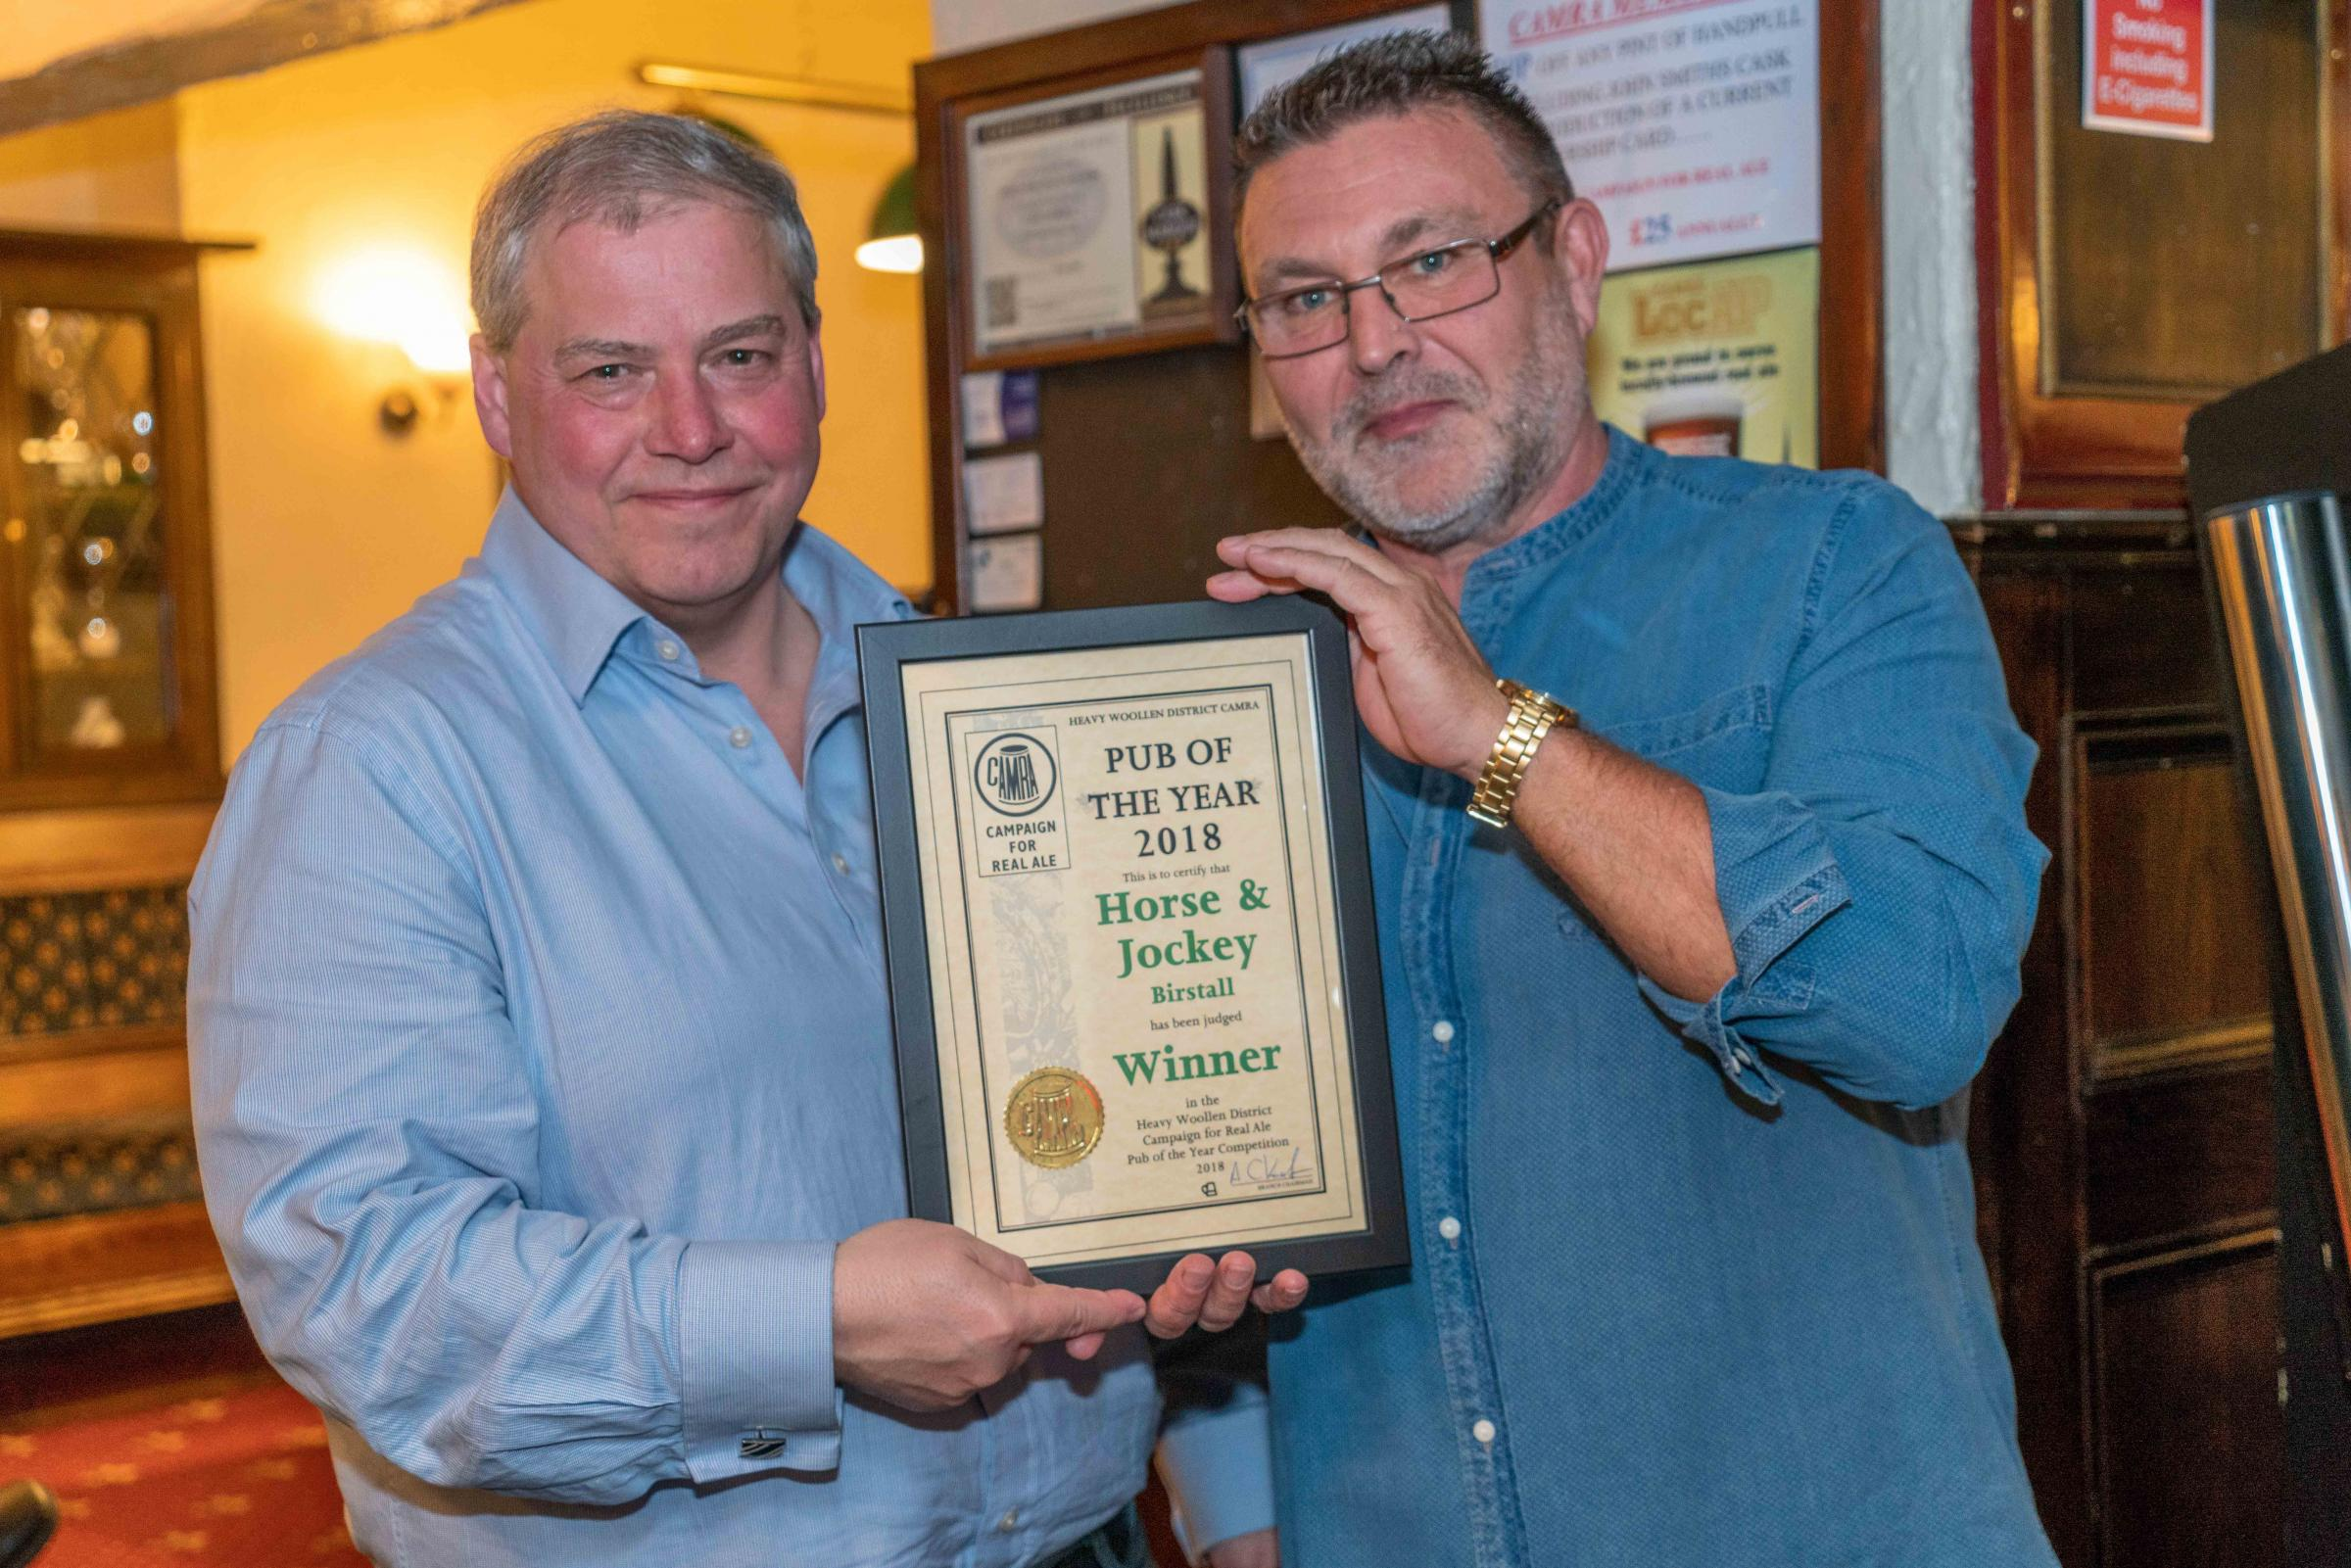 Chairman of the Heavy Woollen CAMRA branch Andy Kassube with Tony Anderson who runs the Horse and Jockey, which has picked up the Pub of the Year award